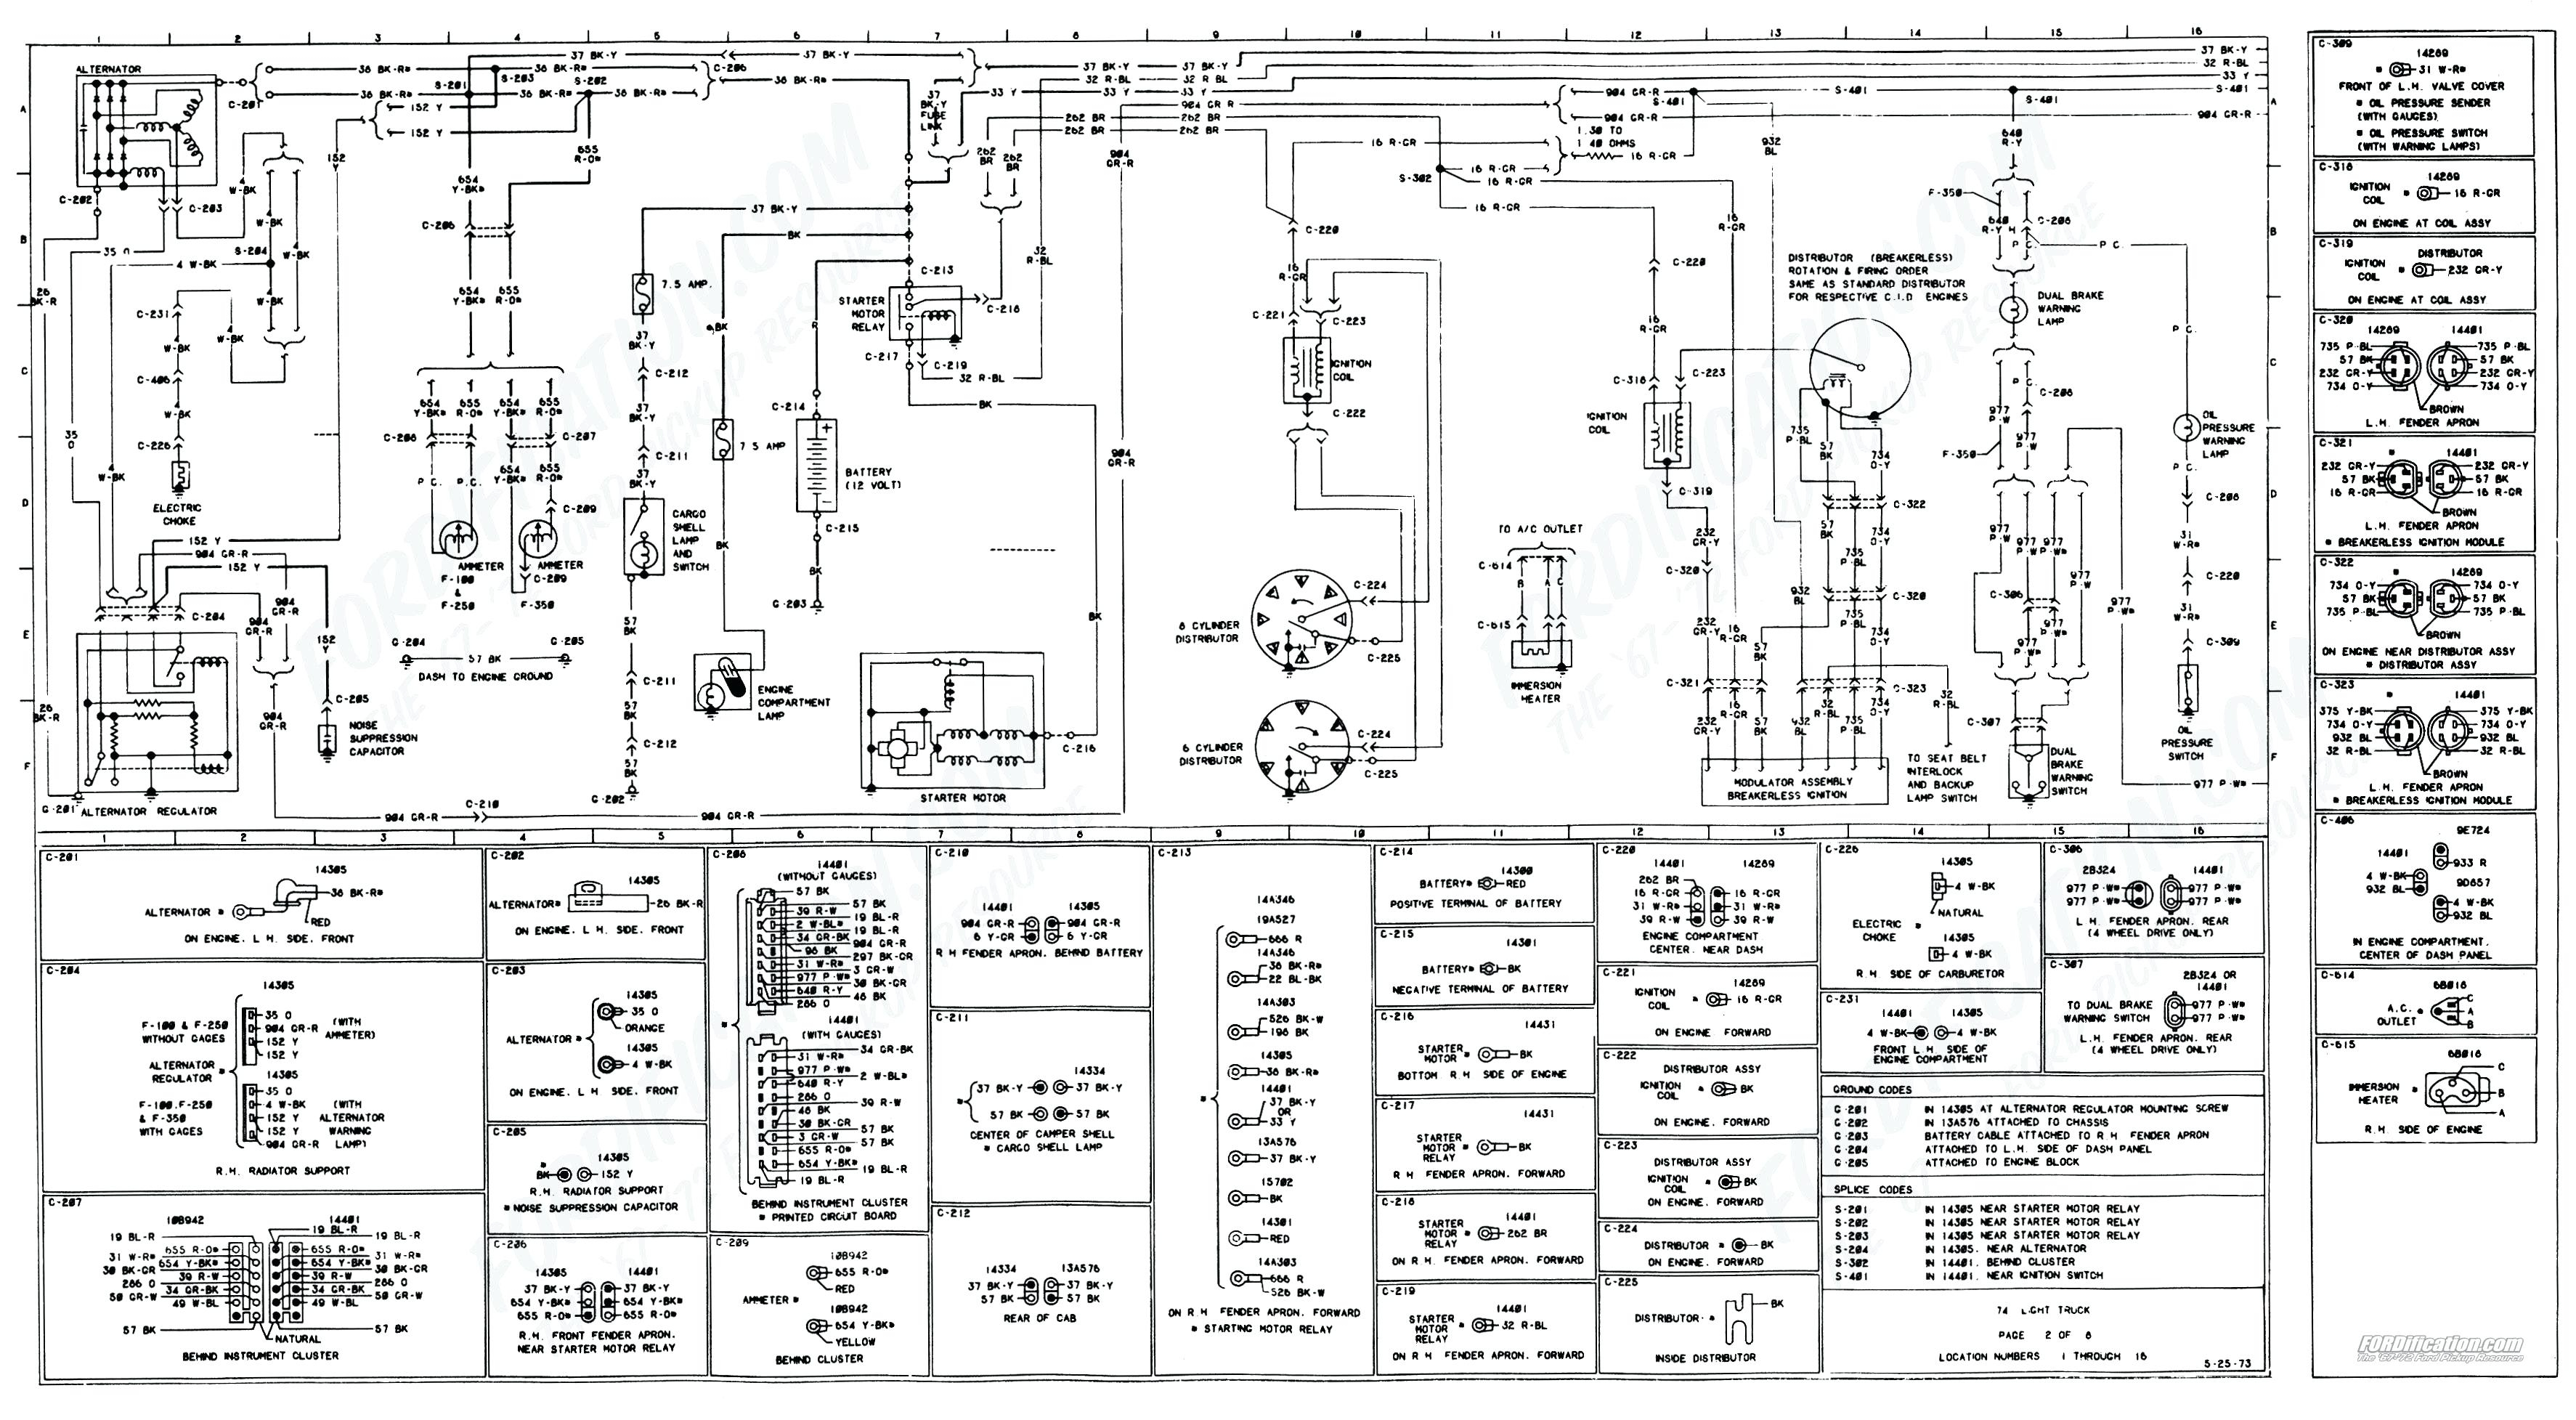 Diagram Ford F650 Cummins Wiring Diagram Full Version Hd Quality Wiring Diagram Mtswiring Prolocomontefano It